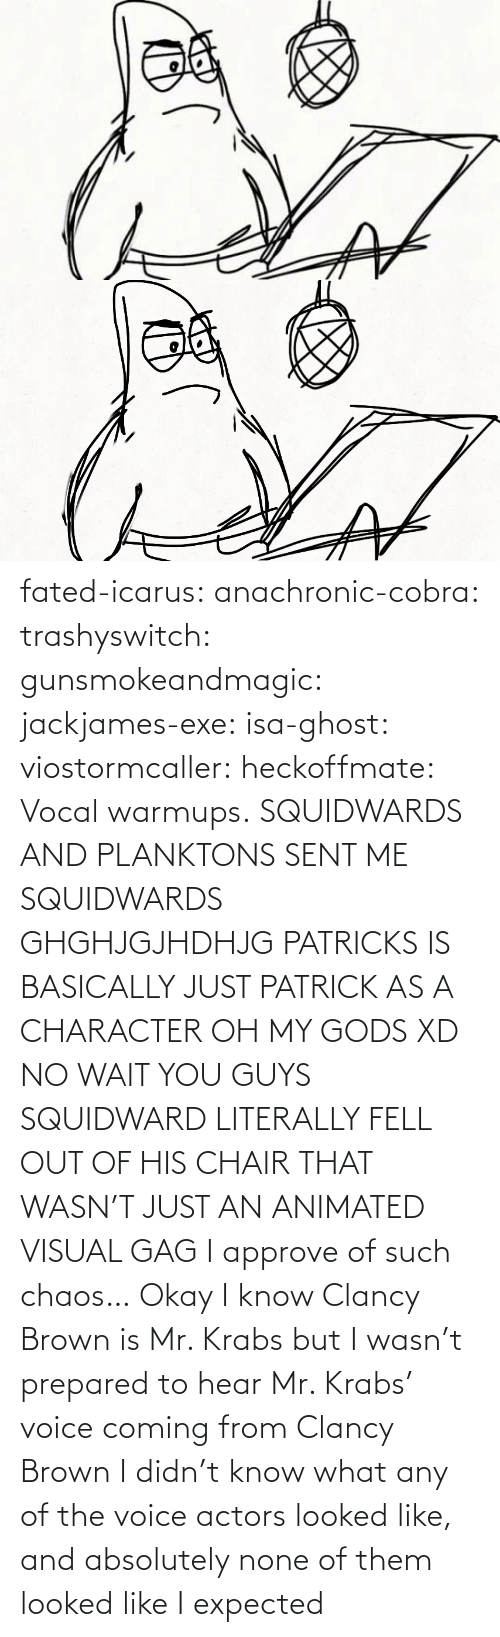 isa: fated-icarus:  anachronic-cobra: trashyswitch:  gunsmokeandmagic:  jackjames-exe:  isa-ghost:   viostormcaller:  heckoffmate: Vocal warmups. SQUIDWARDS AND PLANKTONS SENT ME  SQUIDWARDS GHGHJGJHDHJG   PATRICKS IS BASICALLY JUST PATRICK AS A CHARACTER OH MY GODS XD   NO WAIT YOU GUYS SQUIDWARD LITERALLY FELL OUT OF HIS CHAIR THAT WASN'T JUST AN ANIMATED VISUAL GAG    I approve of such chaos…    Okay I know Clancy Brown is Mr. Krabs but I wasn't prepared to hear Mr. Krabs' voice coming from Clancy Brown    I didn't know what any of the voice actors looked like, and absolutely none of them looked like I expected